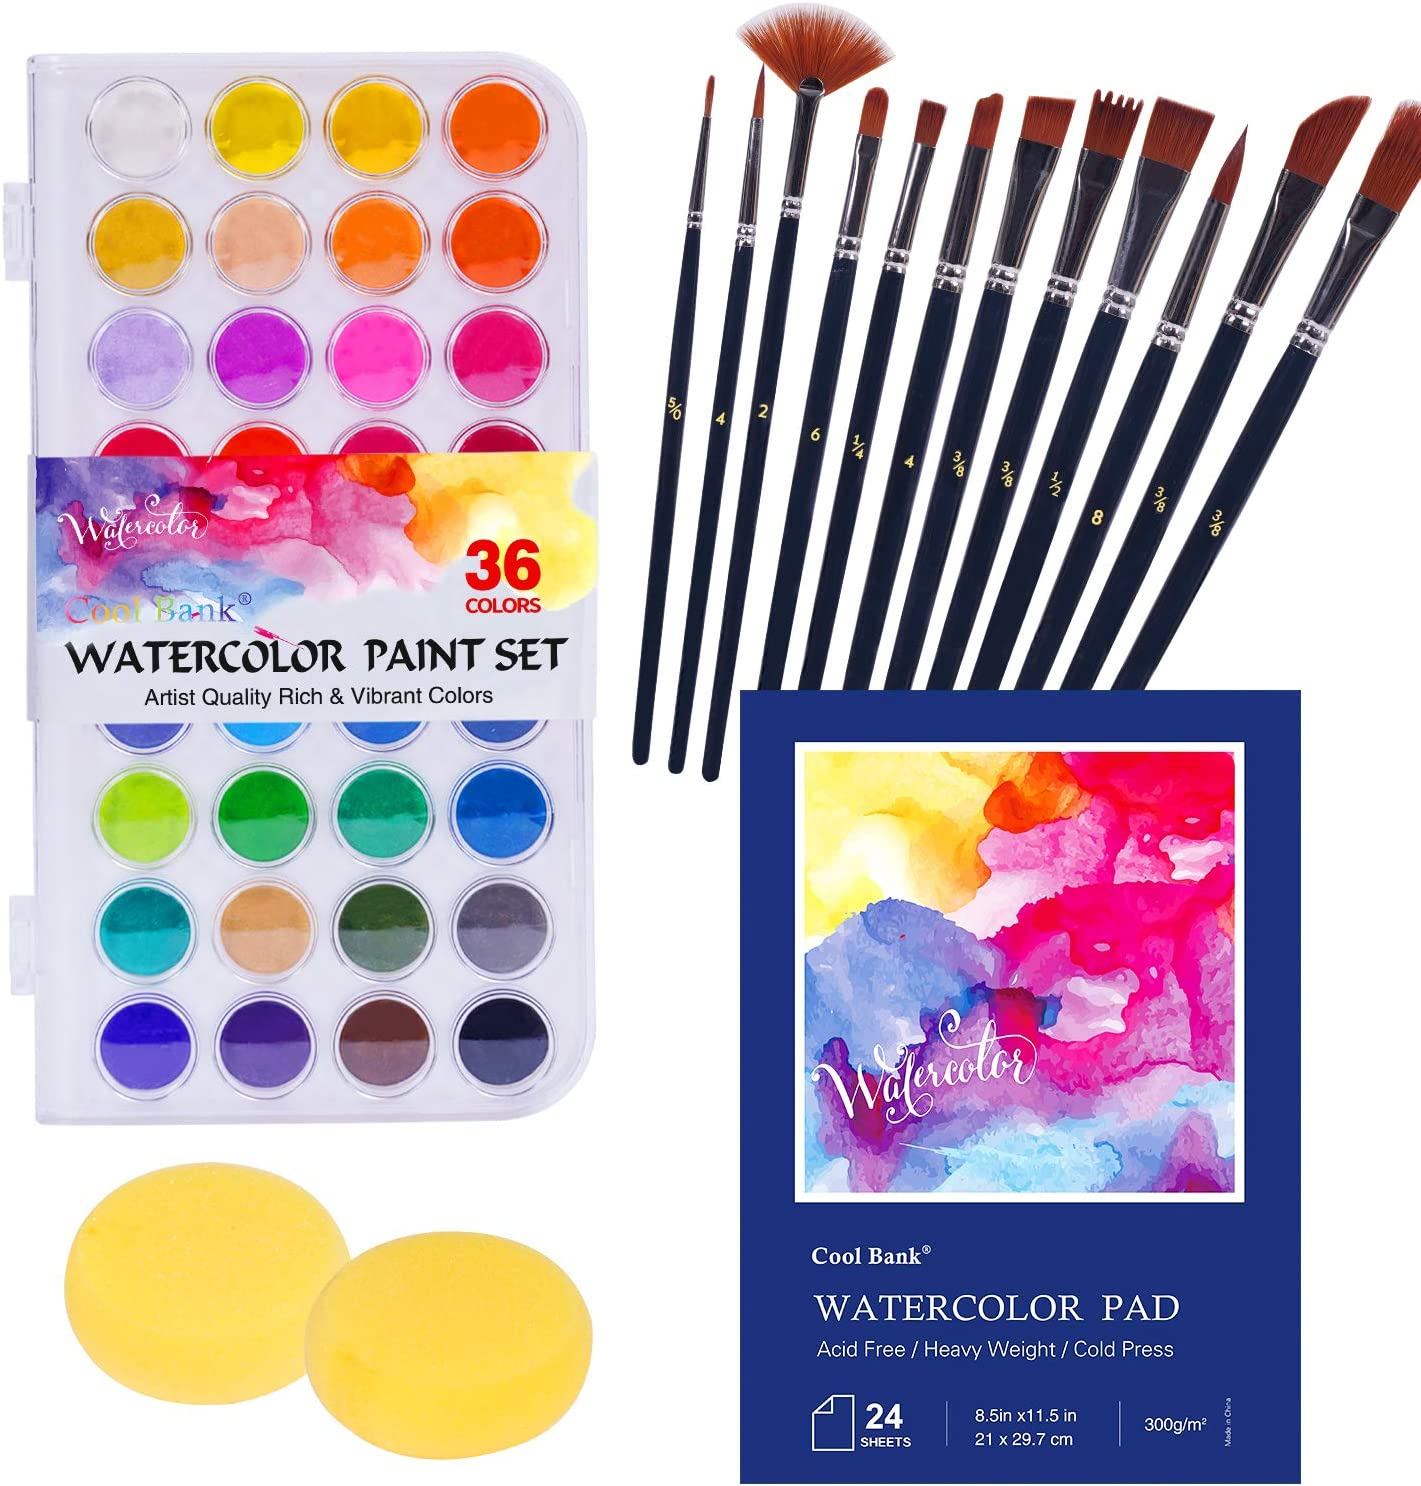 50% Off Coupon – Watercolor Paint Set Kit